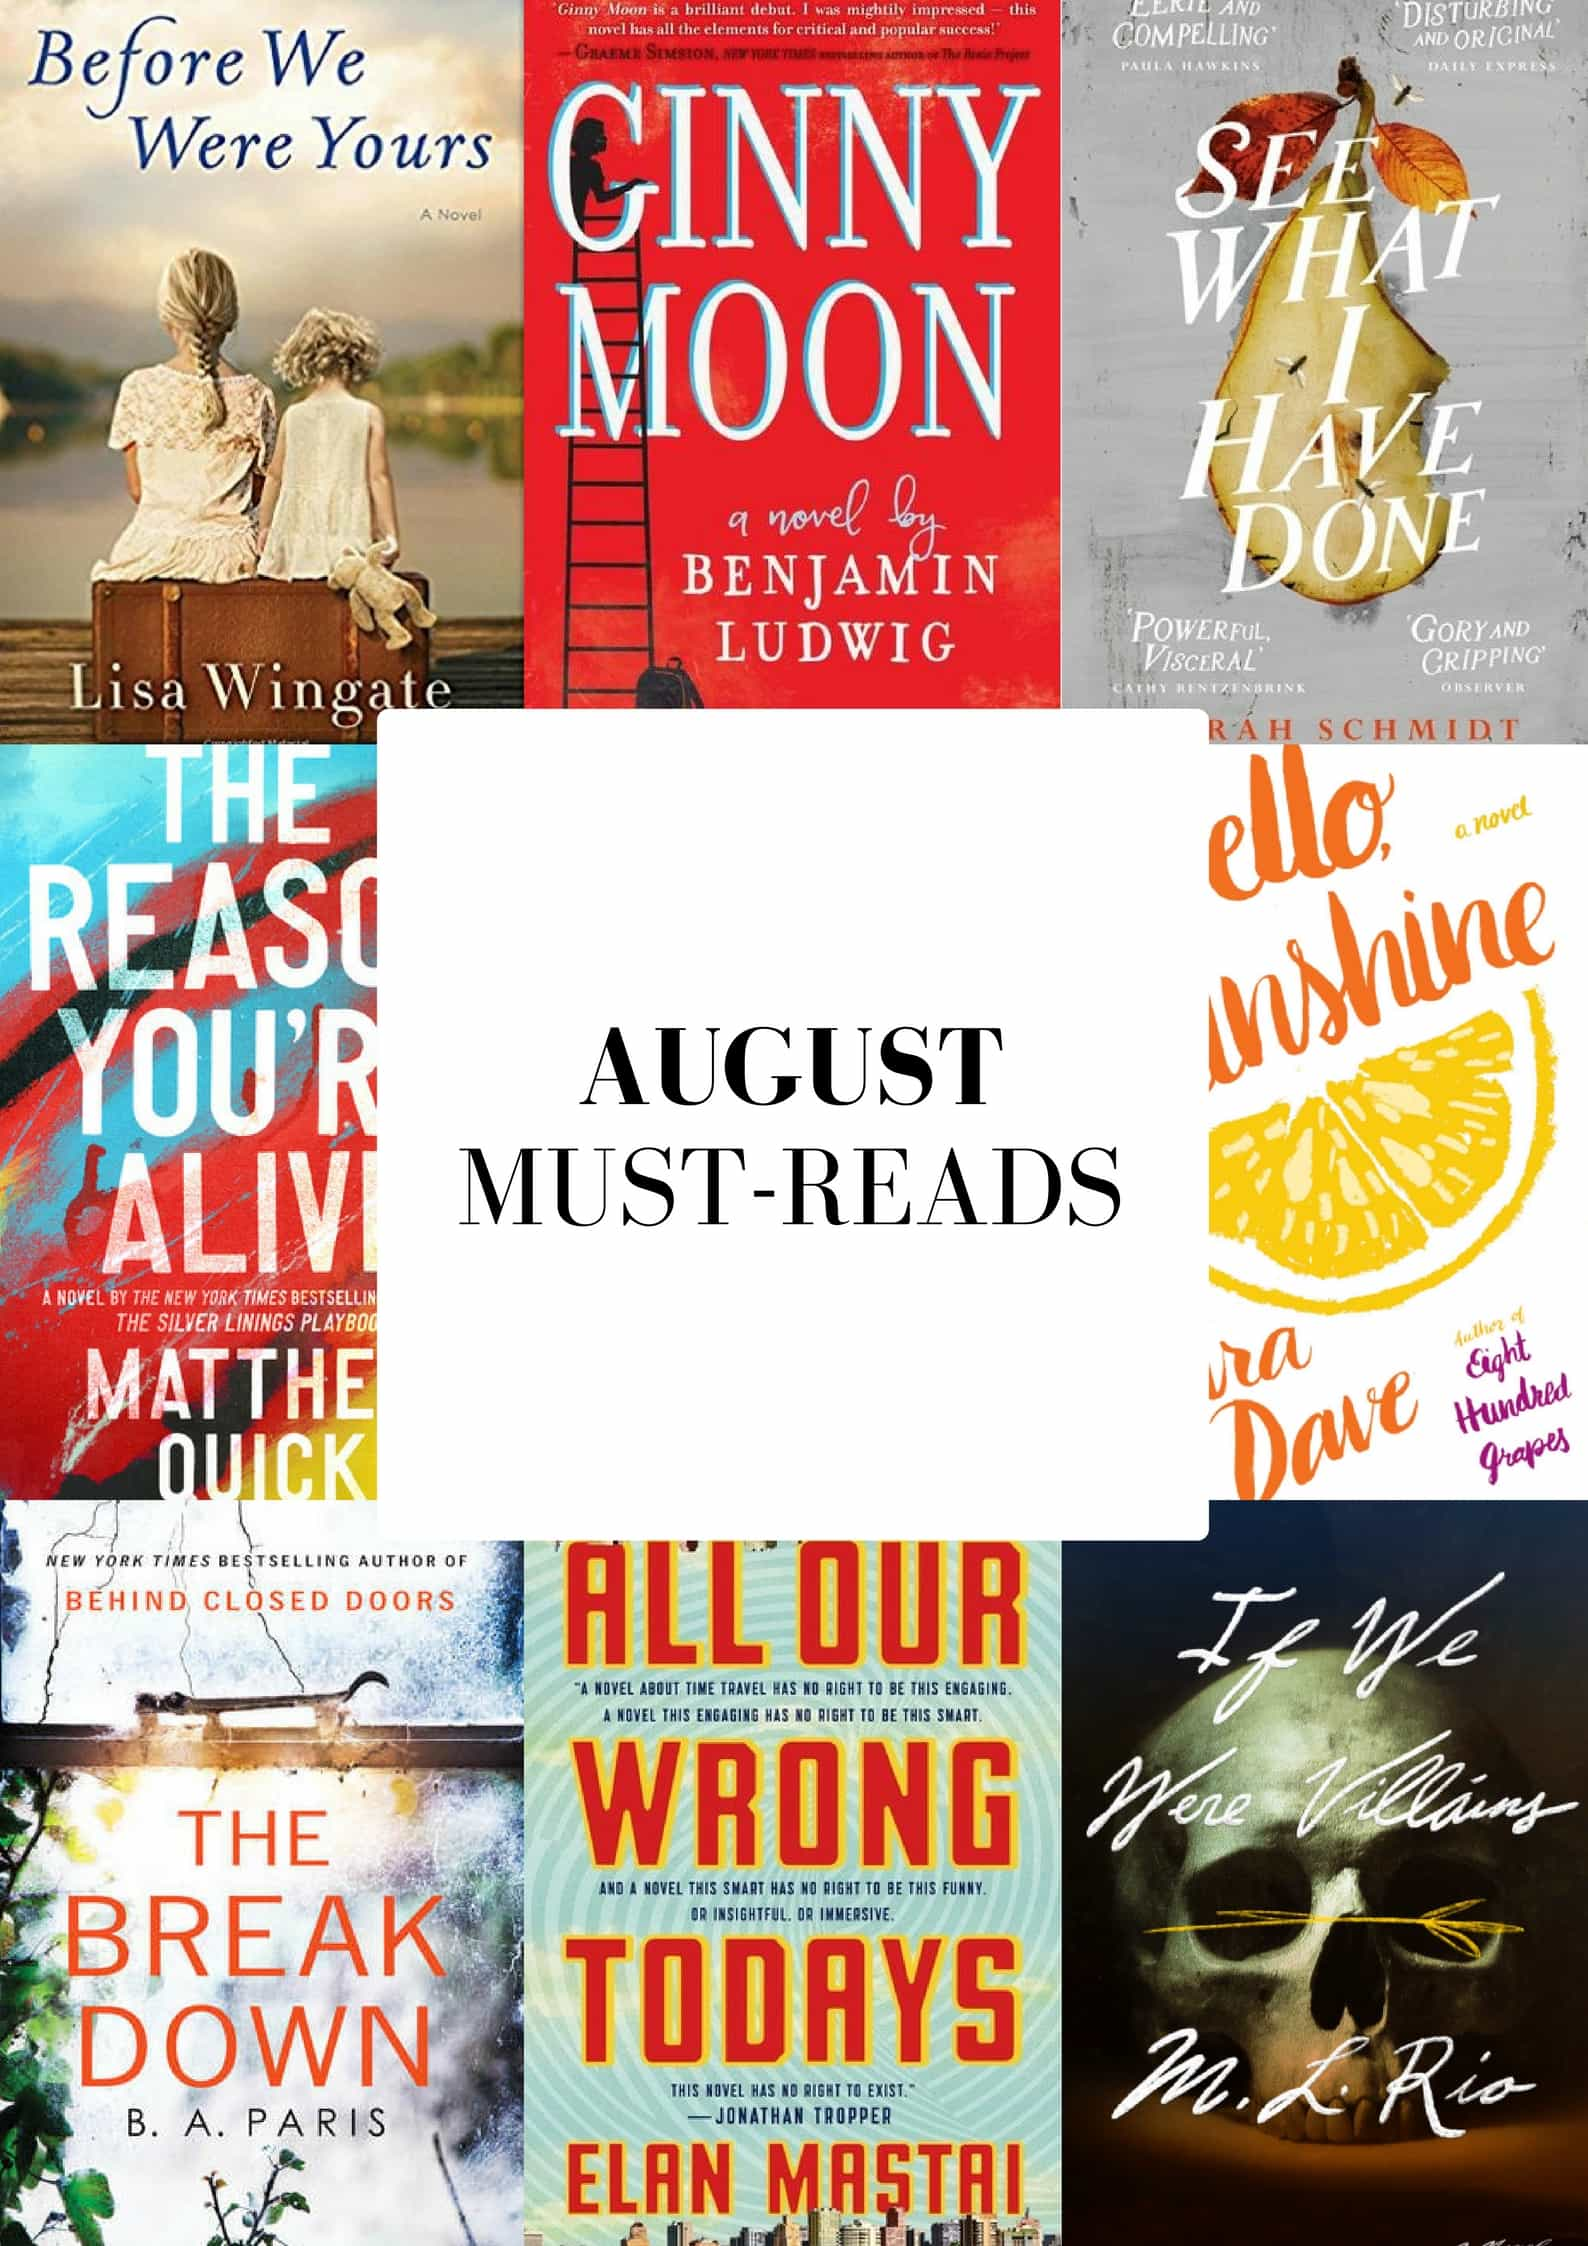 August 2017 Must-Reads from MomAdvice.com